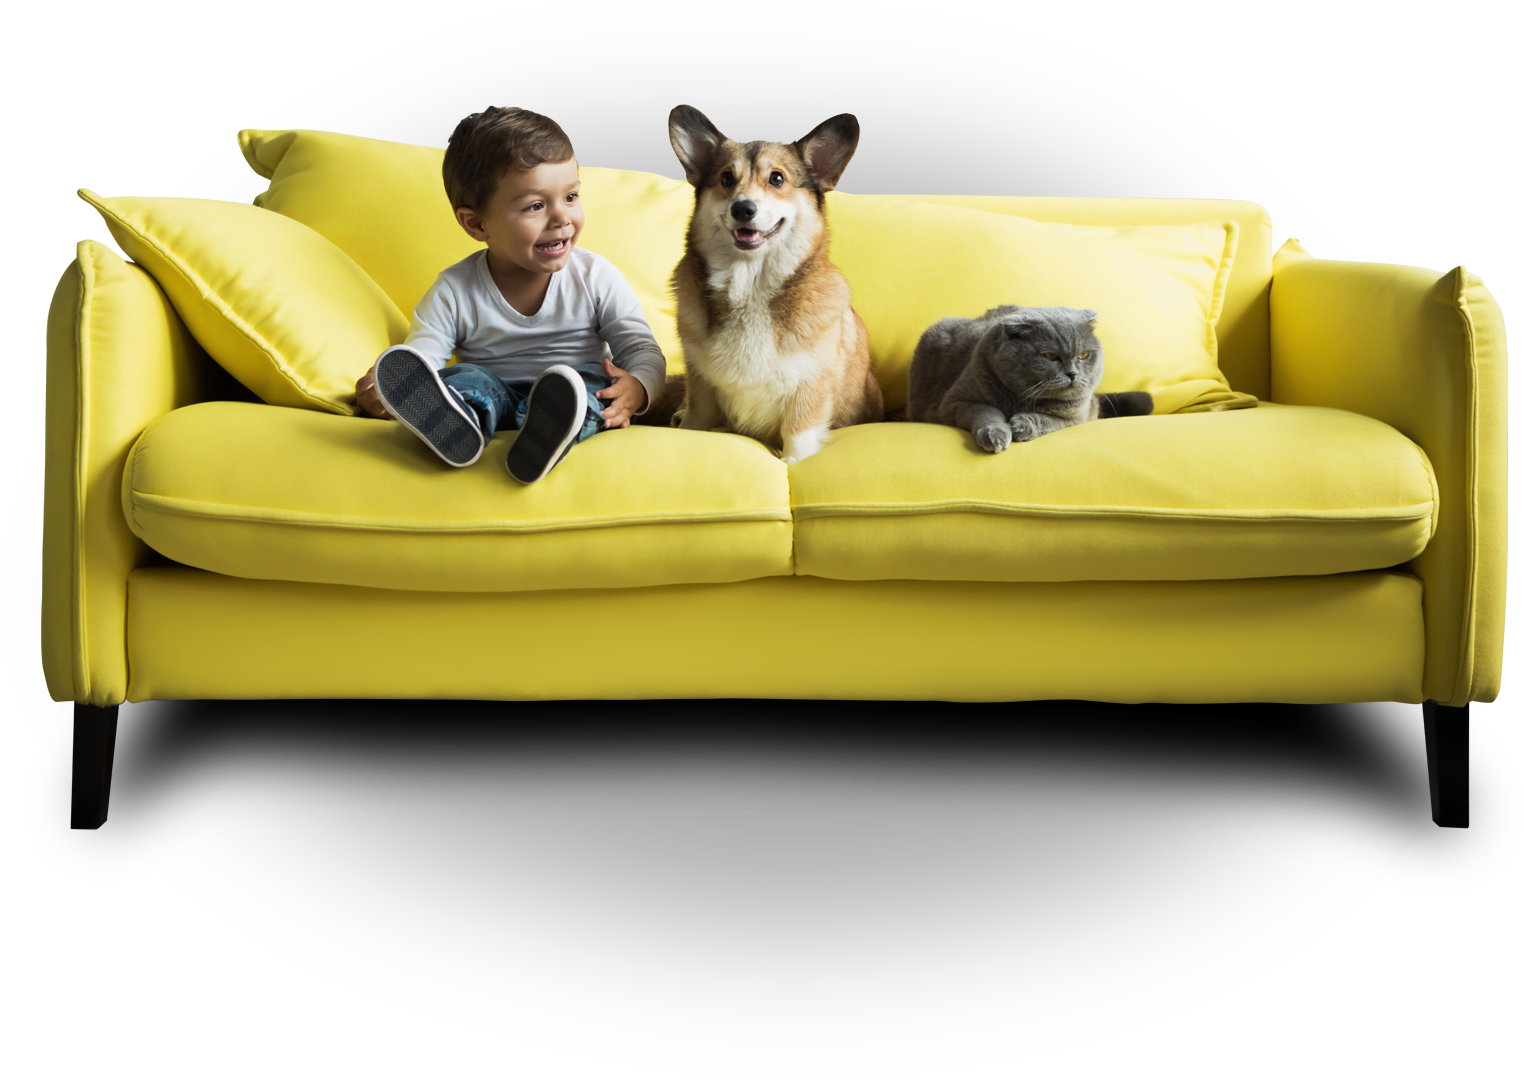 mold specialist phoenix - kid cat and dog sitting on yellow couch